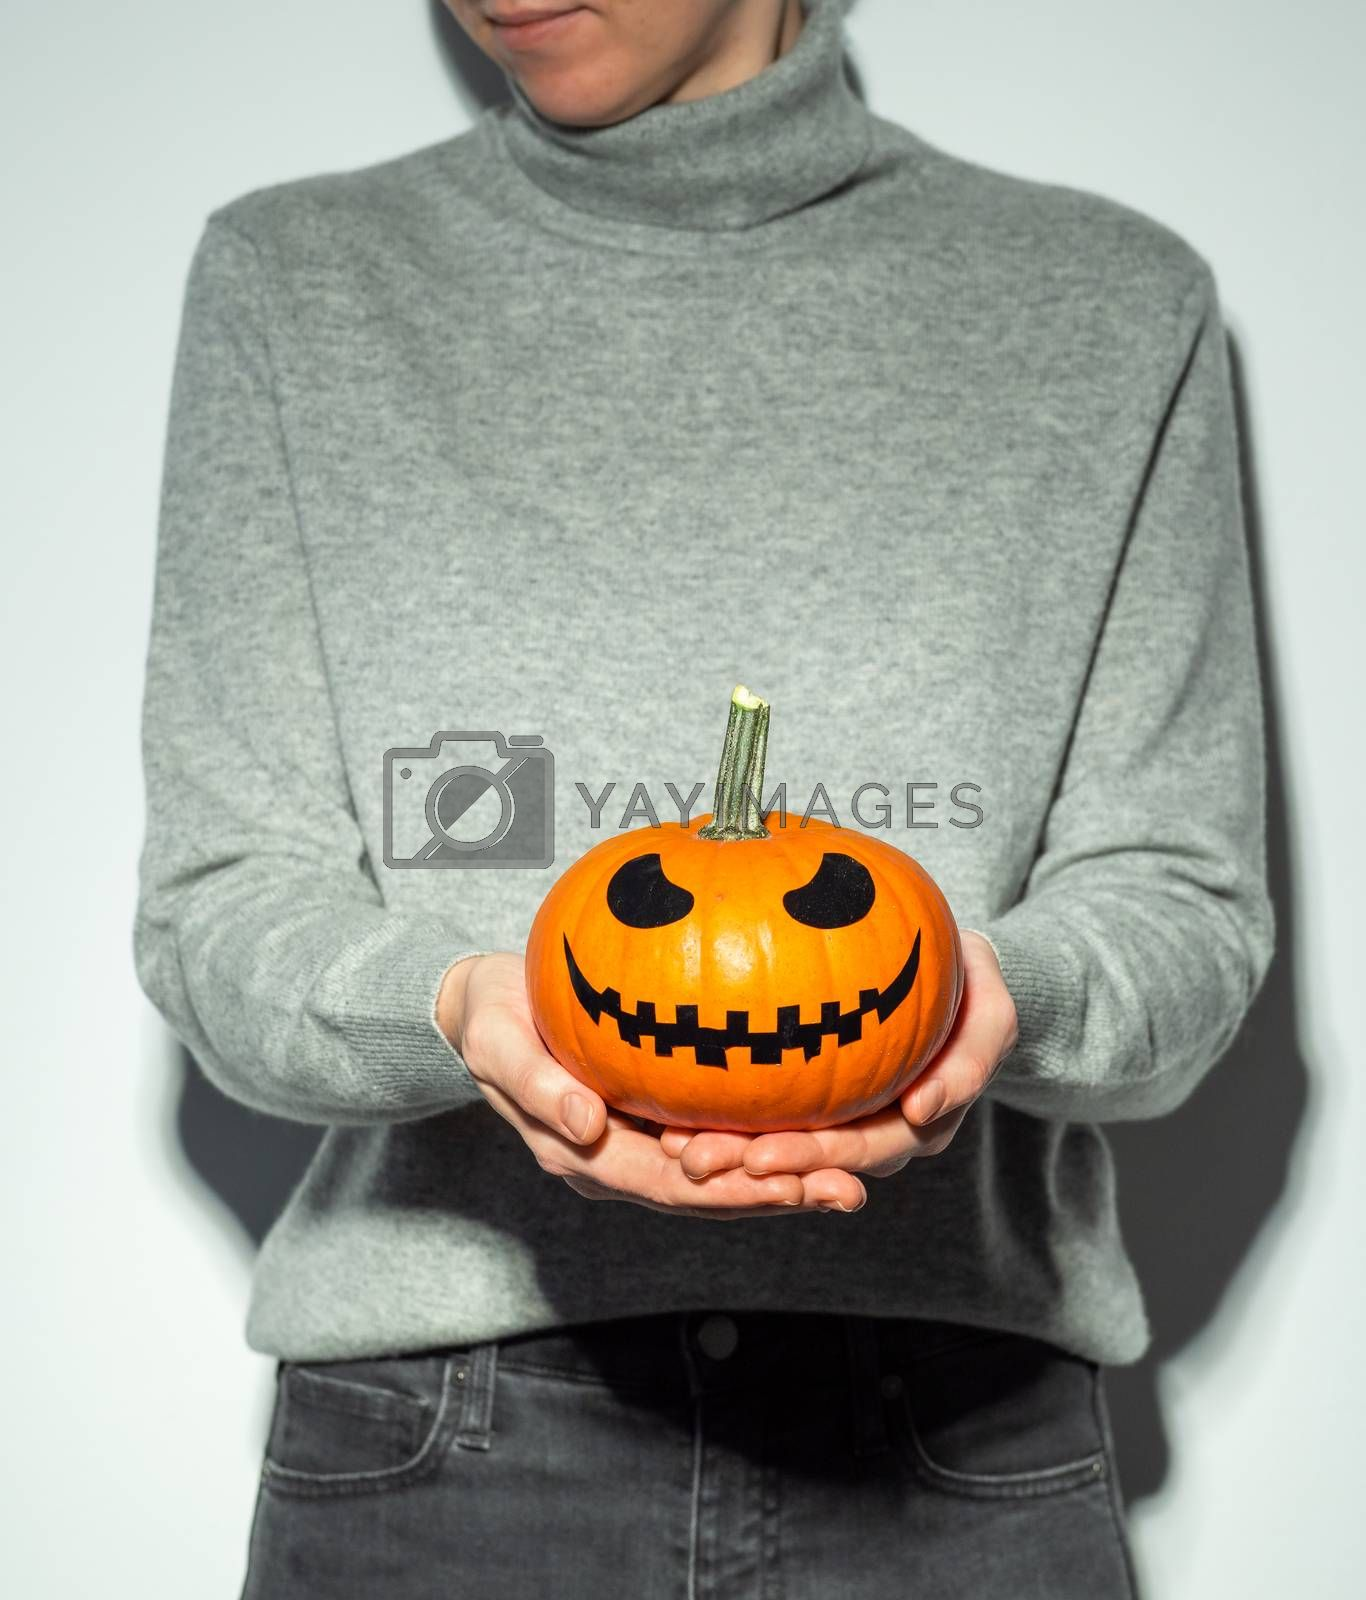 Crop unrecognizable woman holding halloween scary face bright orange pumpkin. Young woman in gray cashmere sweater and black jeans with jack-o-lantern pumpkin in hands. Snapshot style.. Copy space